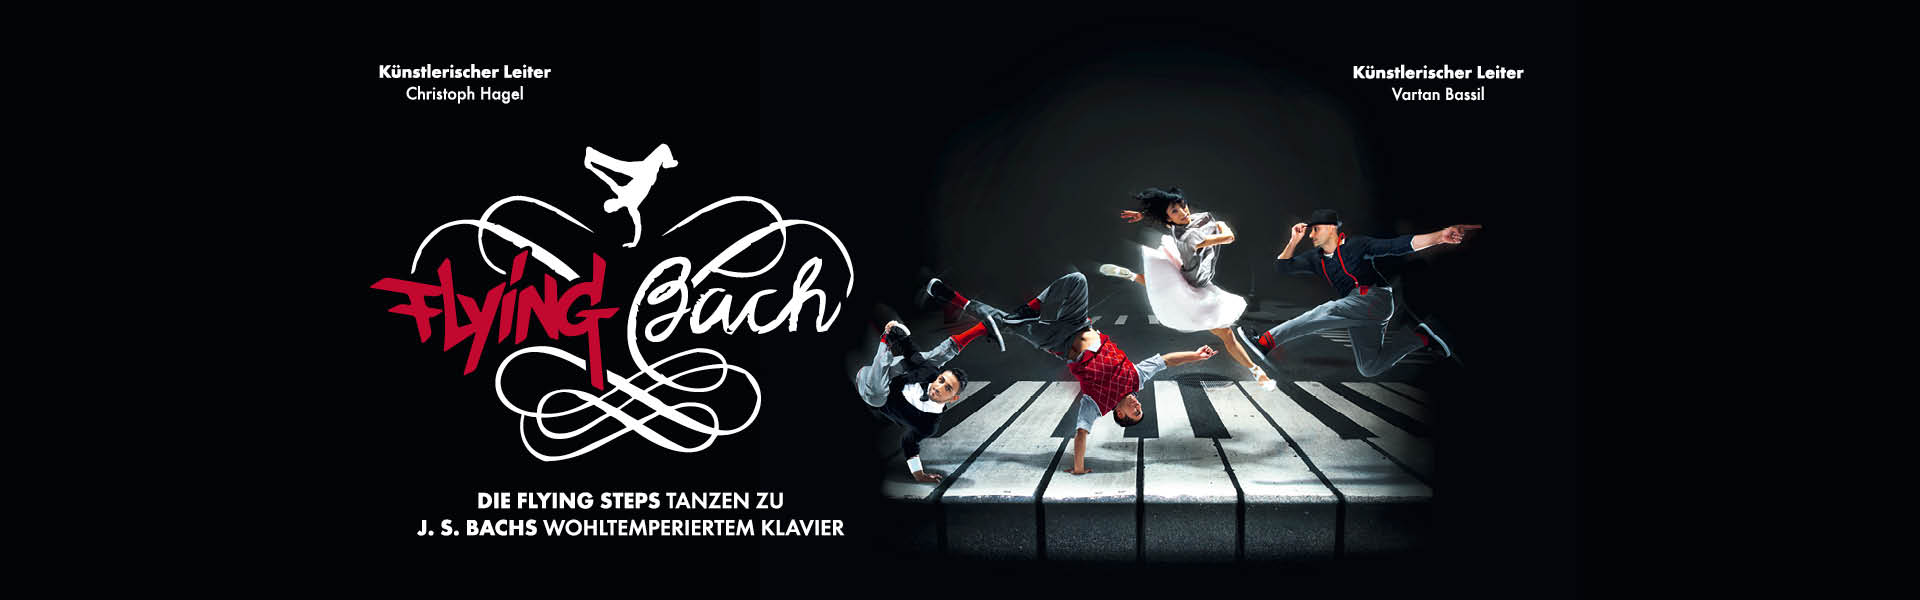 Flying Bach 2019